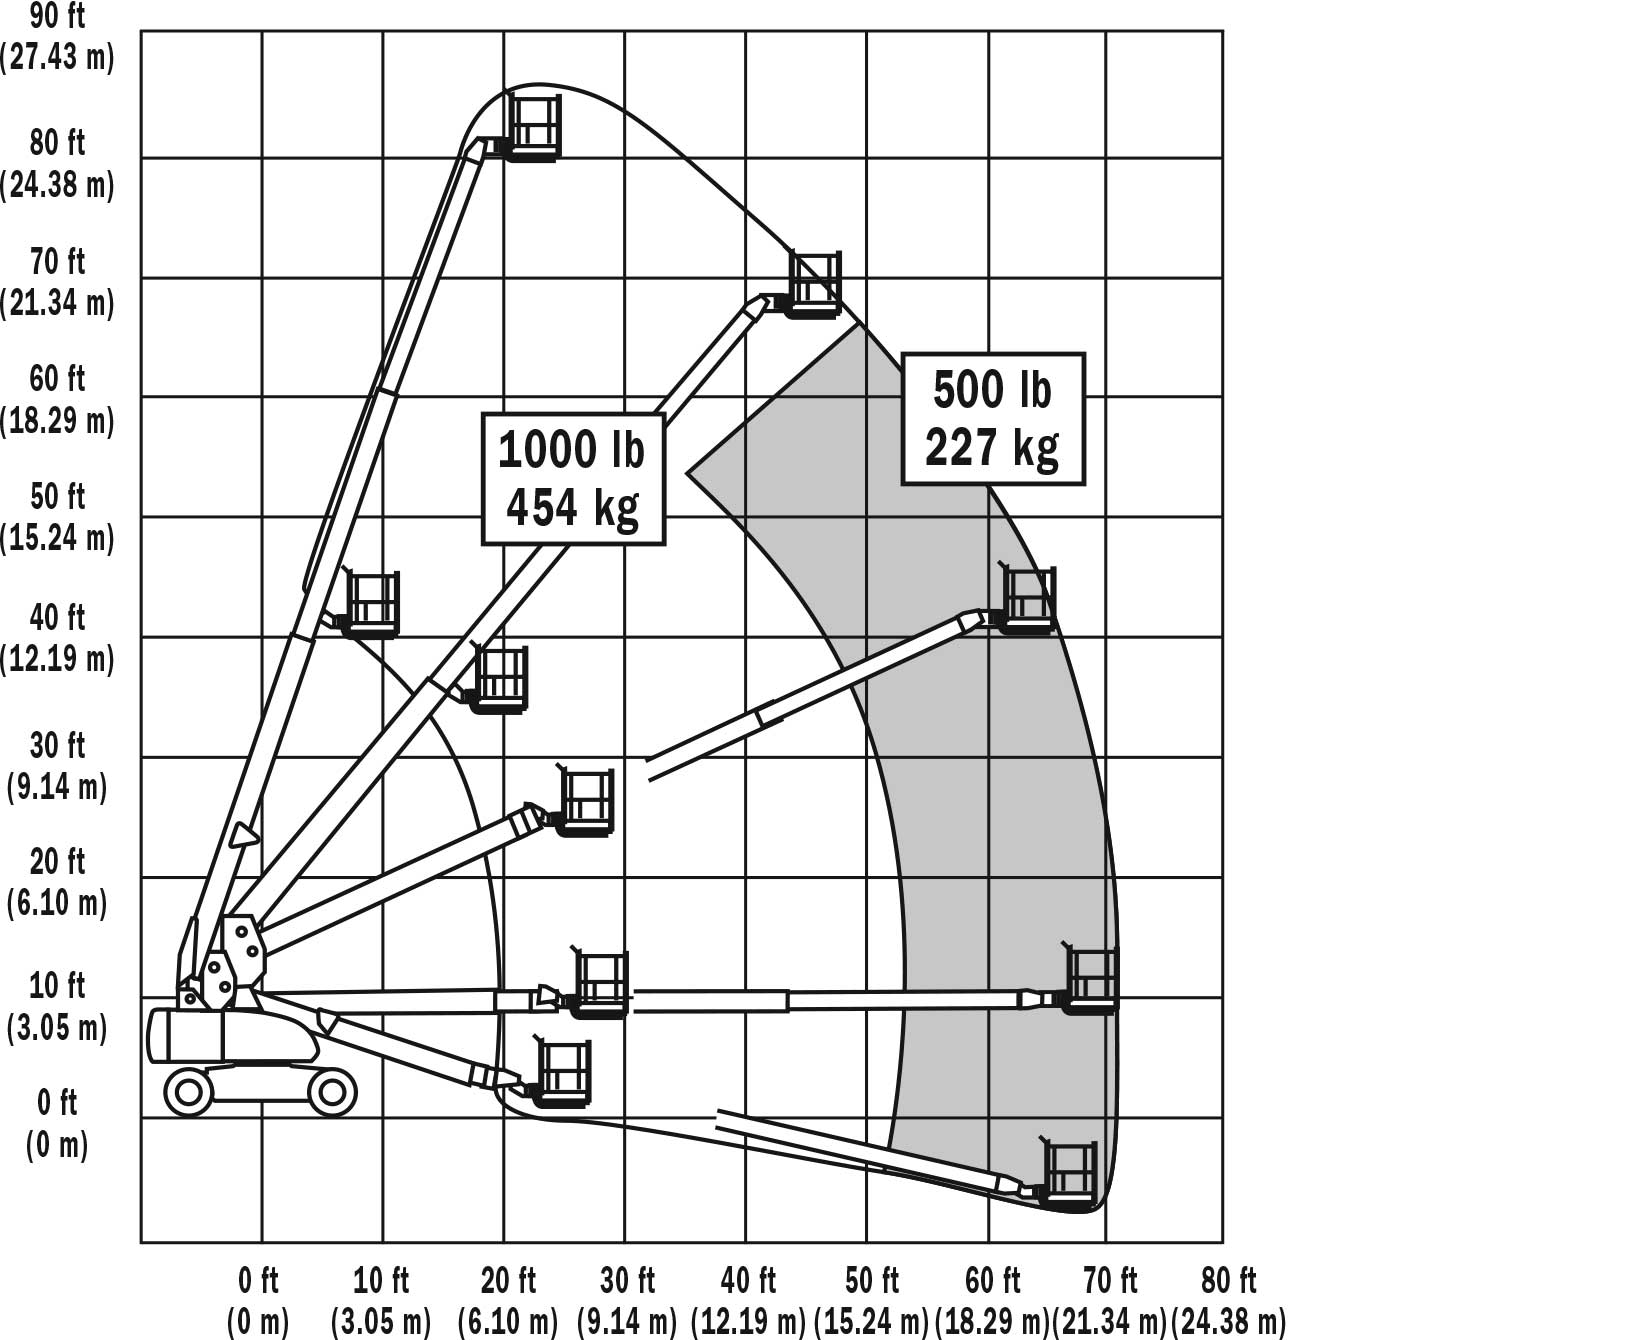 JLG 800S Reach Diagram